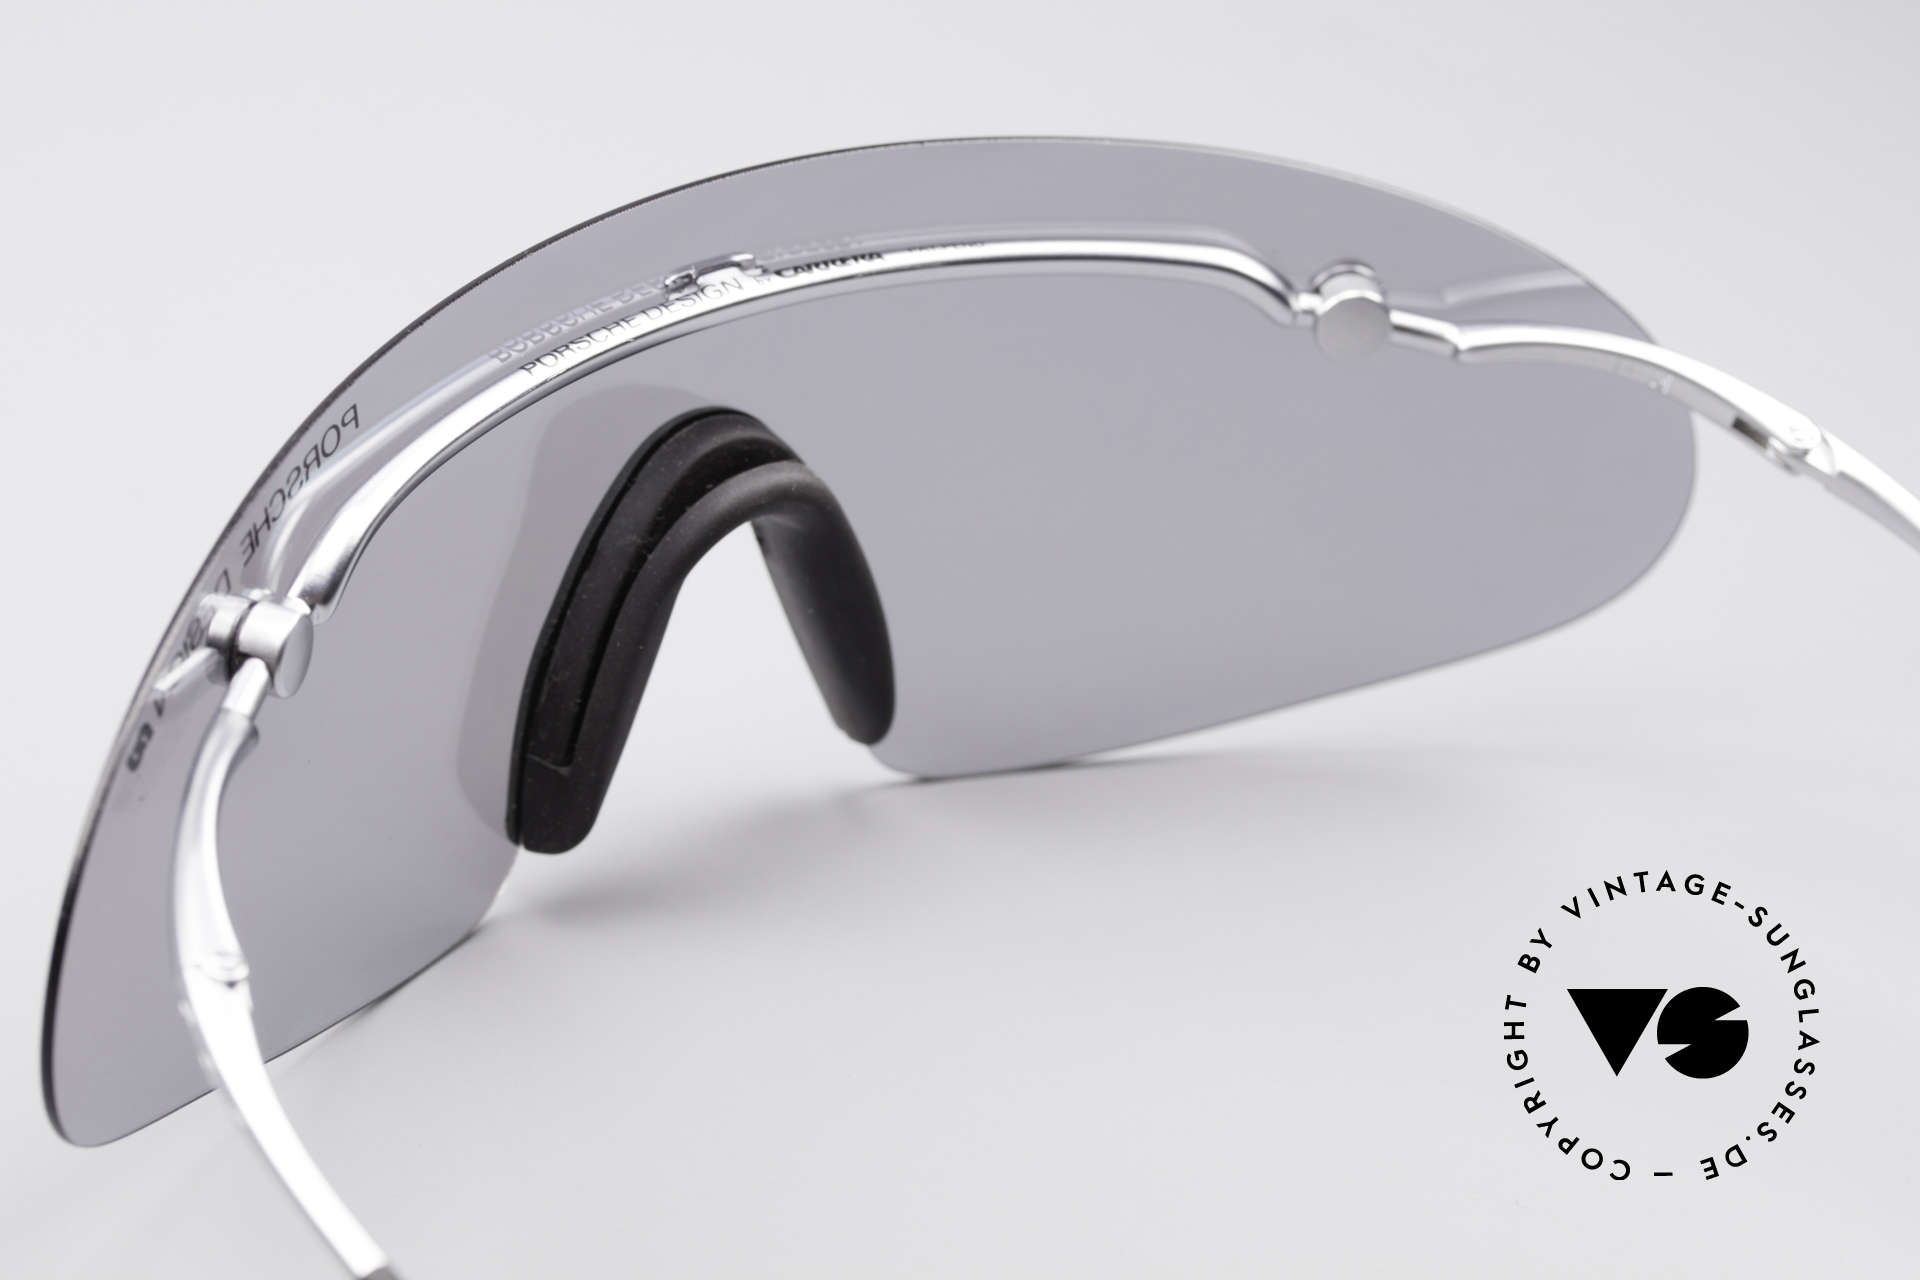 Porsche 5692 F09 Flat Designer Shades, NO RETRO sunglasses, but a genuine unworn ORIGINAL!, Made for Men